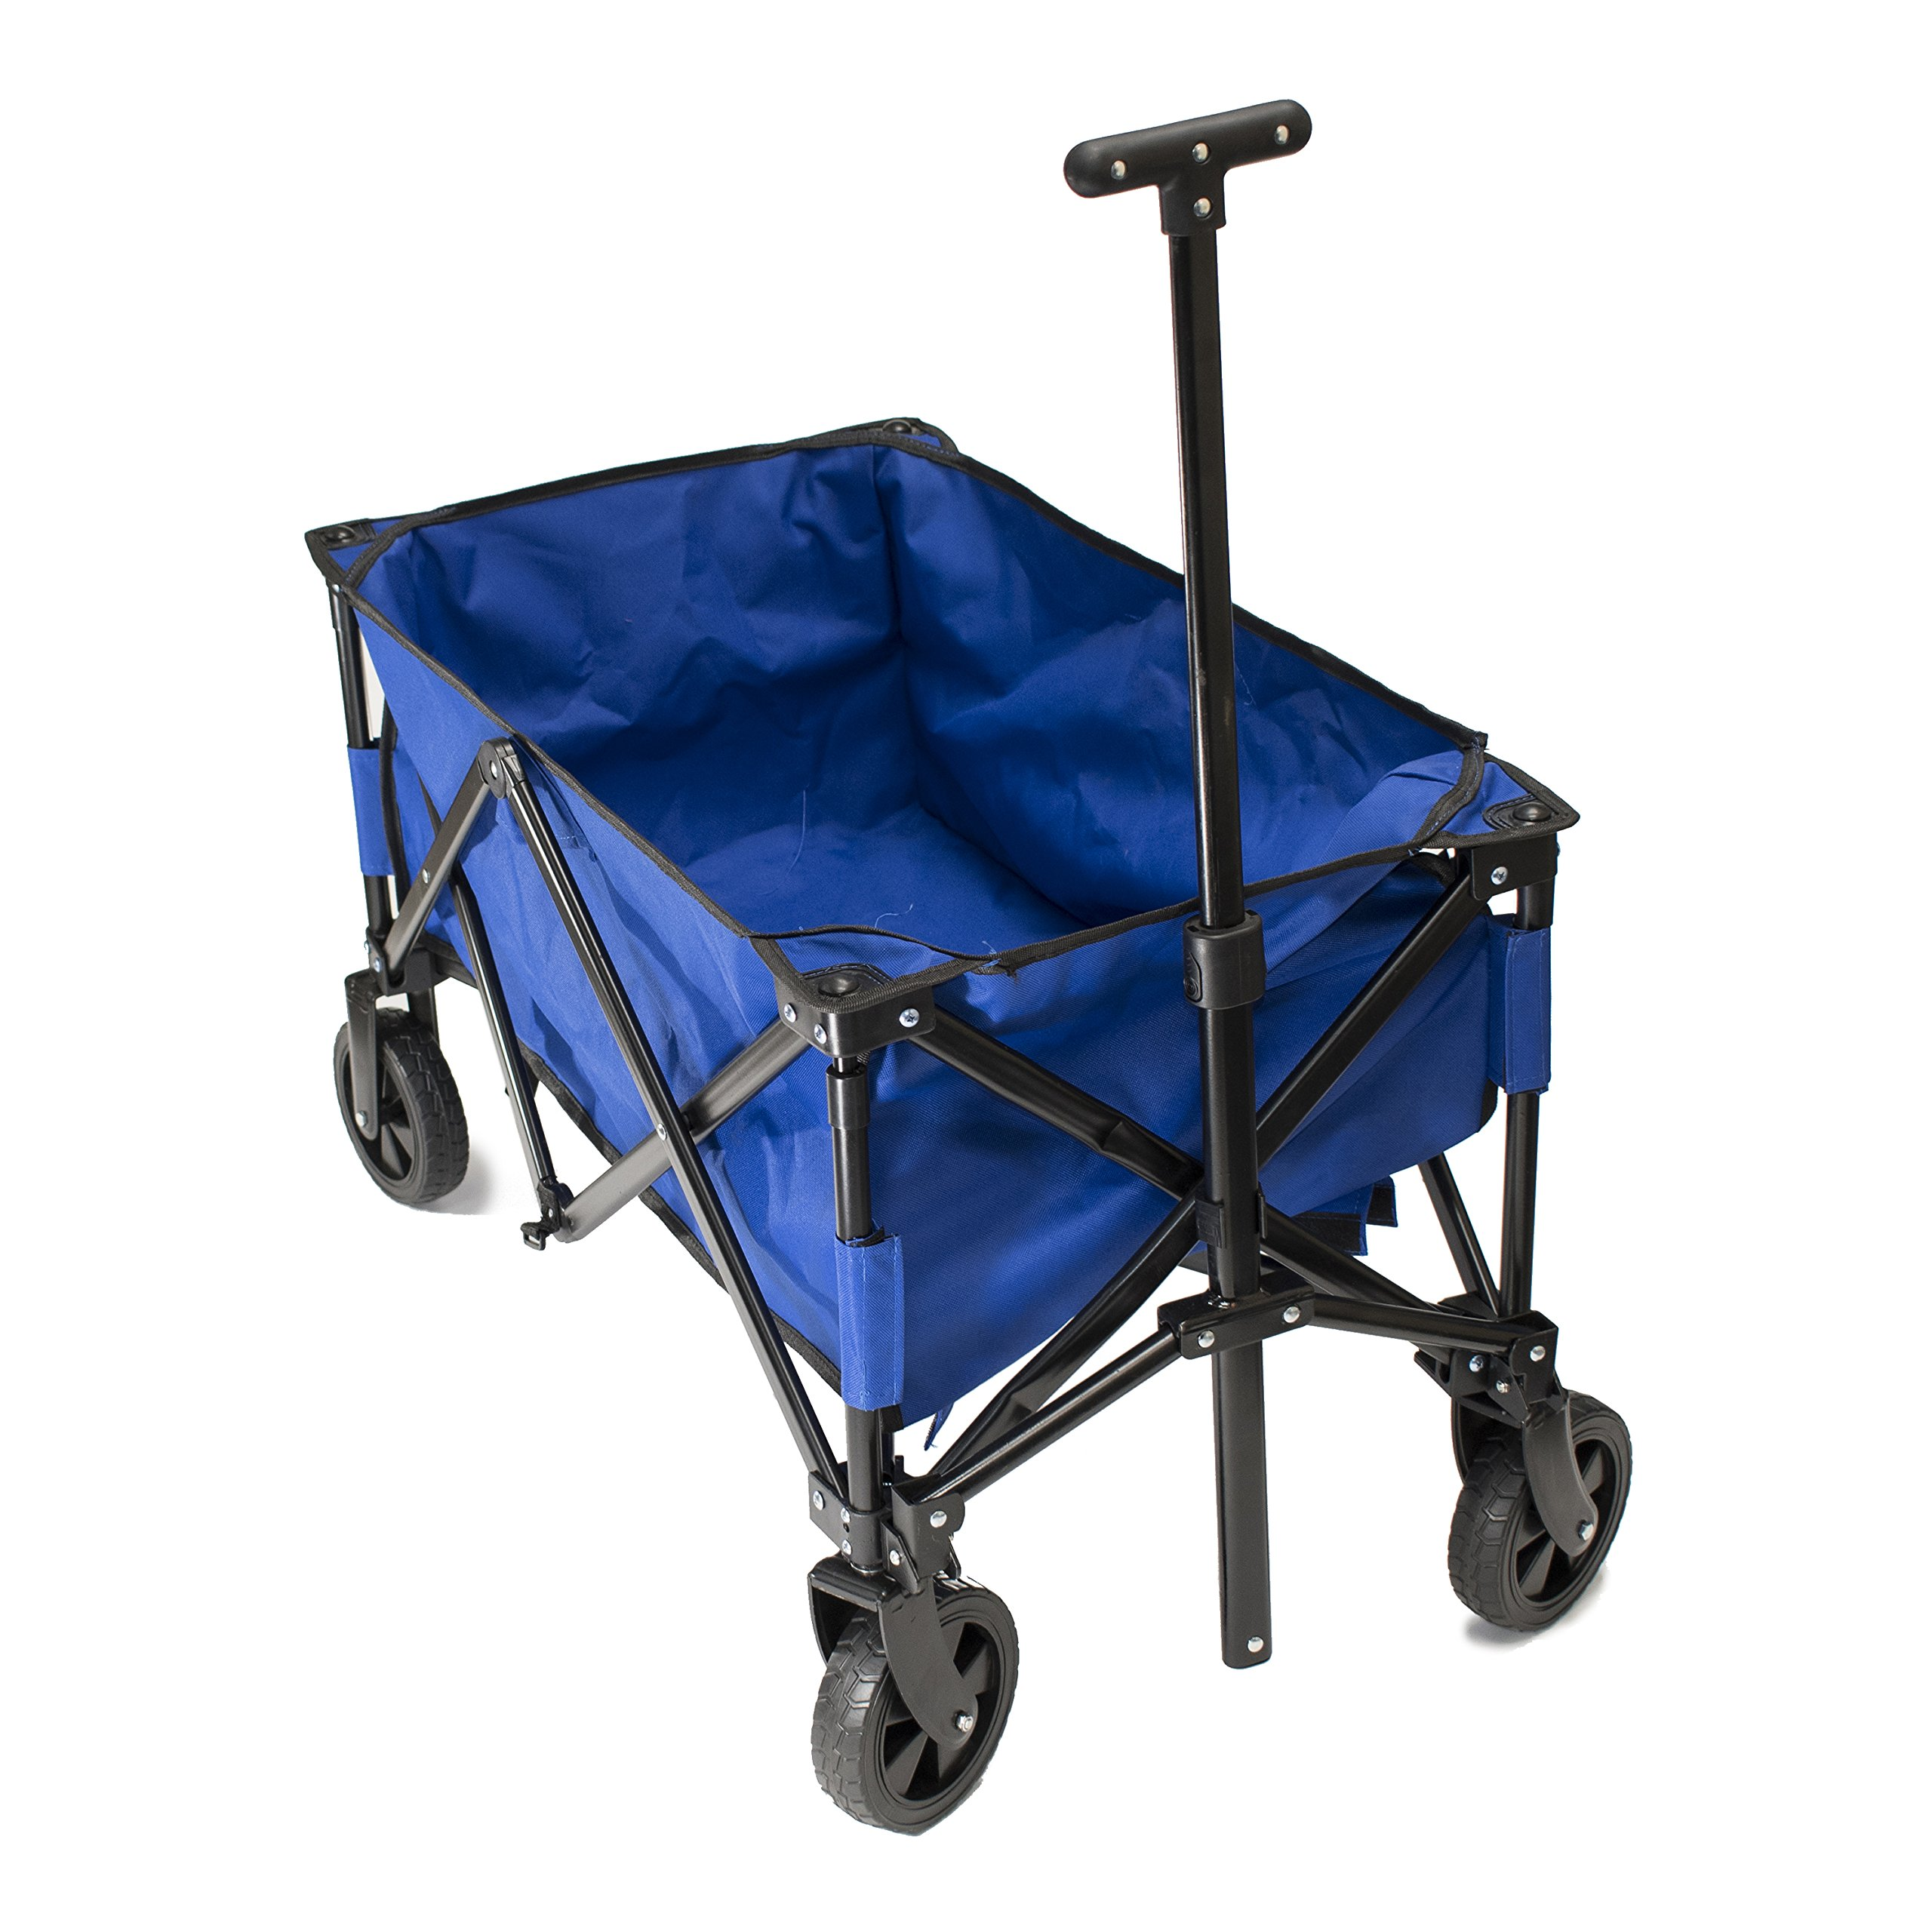 ALEKO TC1014 Multipurpose Folding Utility Wagon with Adjustable Retractable Handle 35 x 20 x 23 Inches Blue with Black Frame